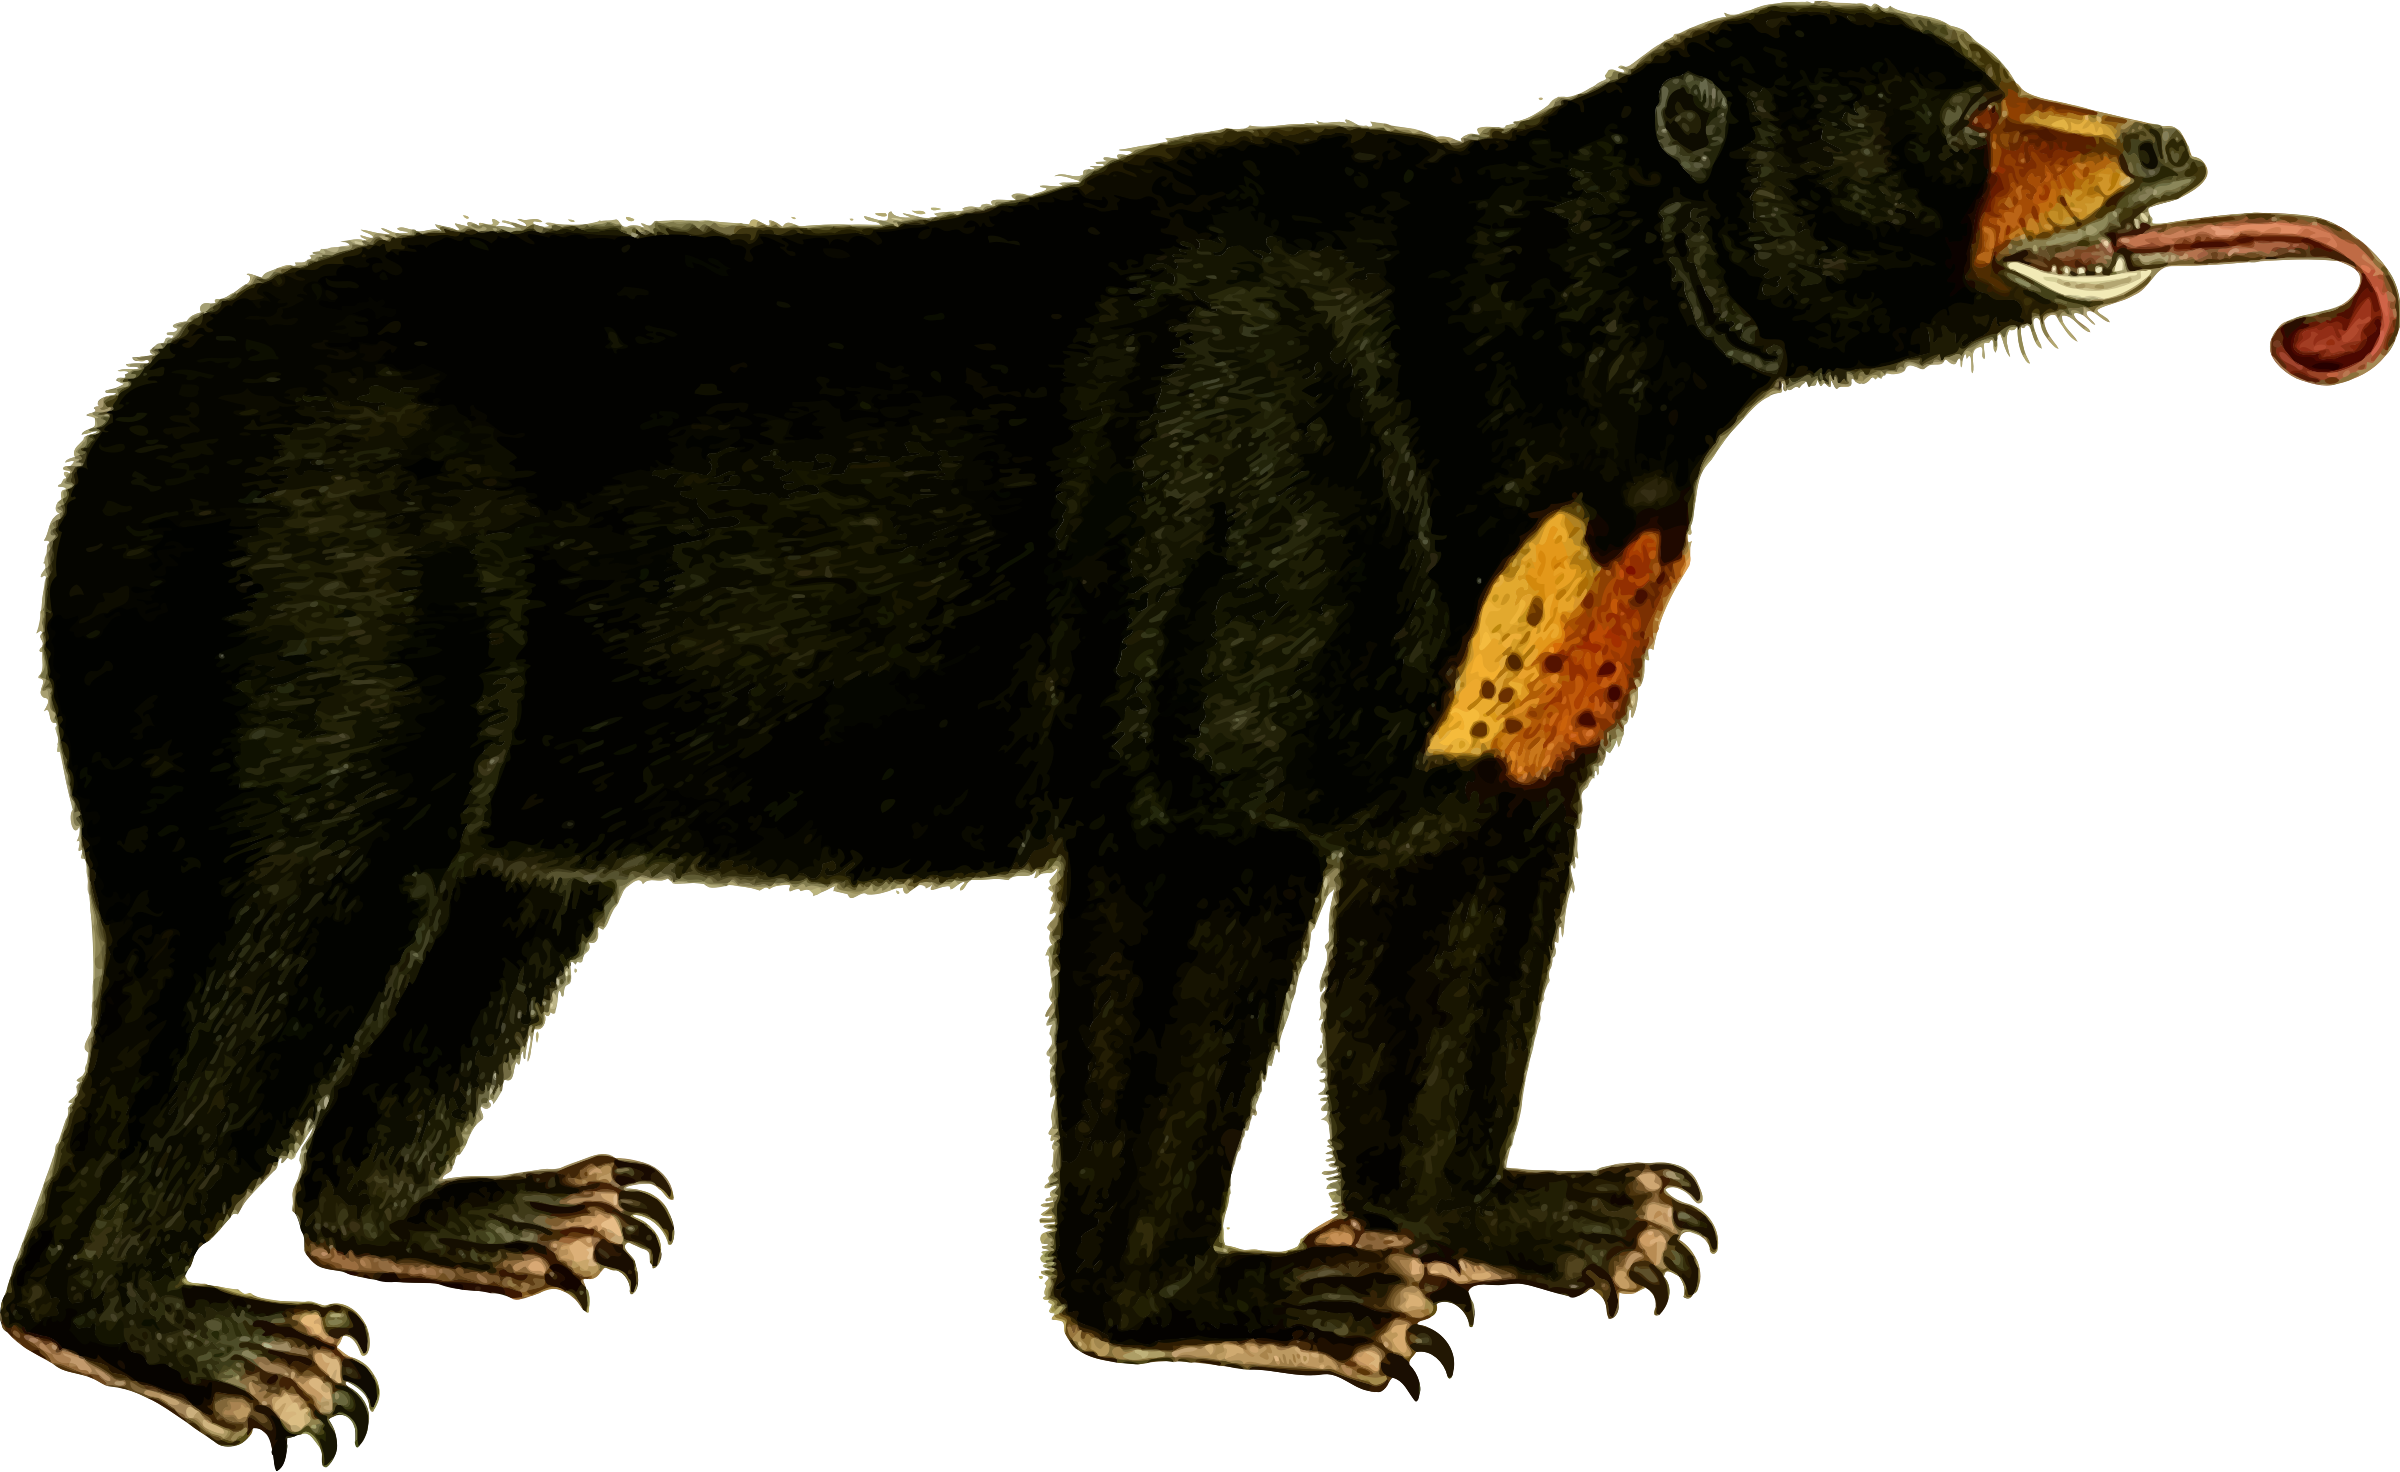 Bear 2 (isolated) by Firkin